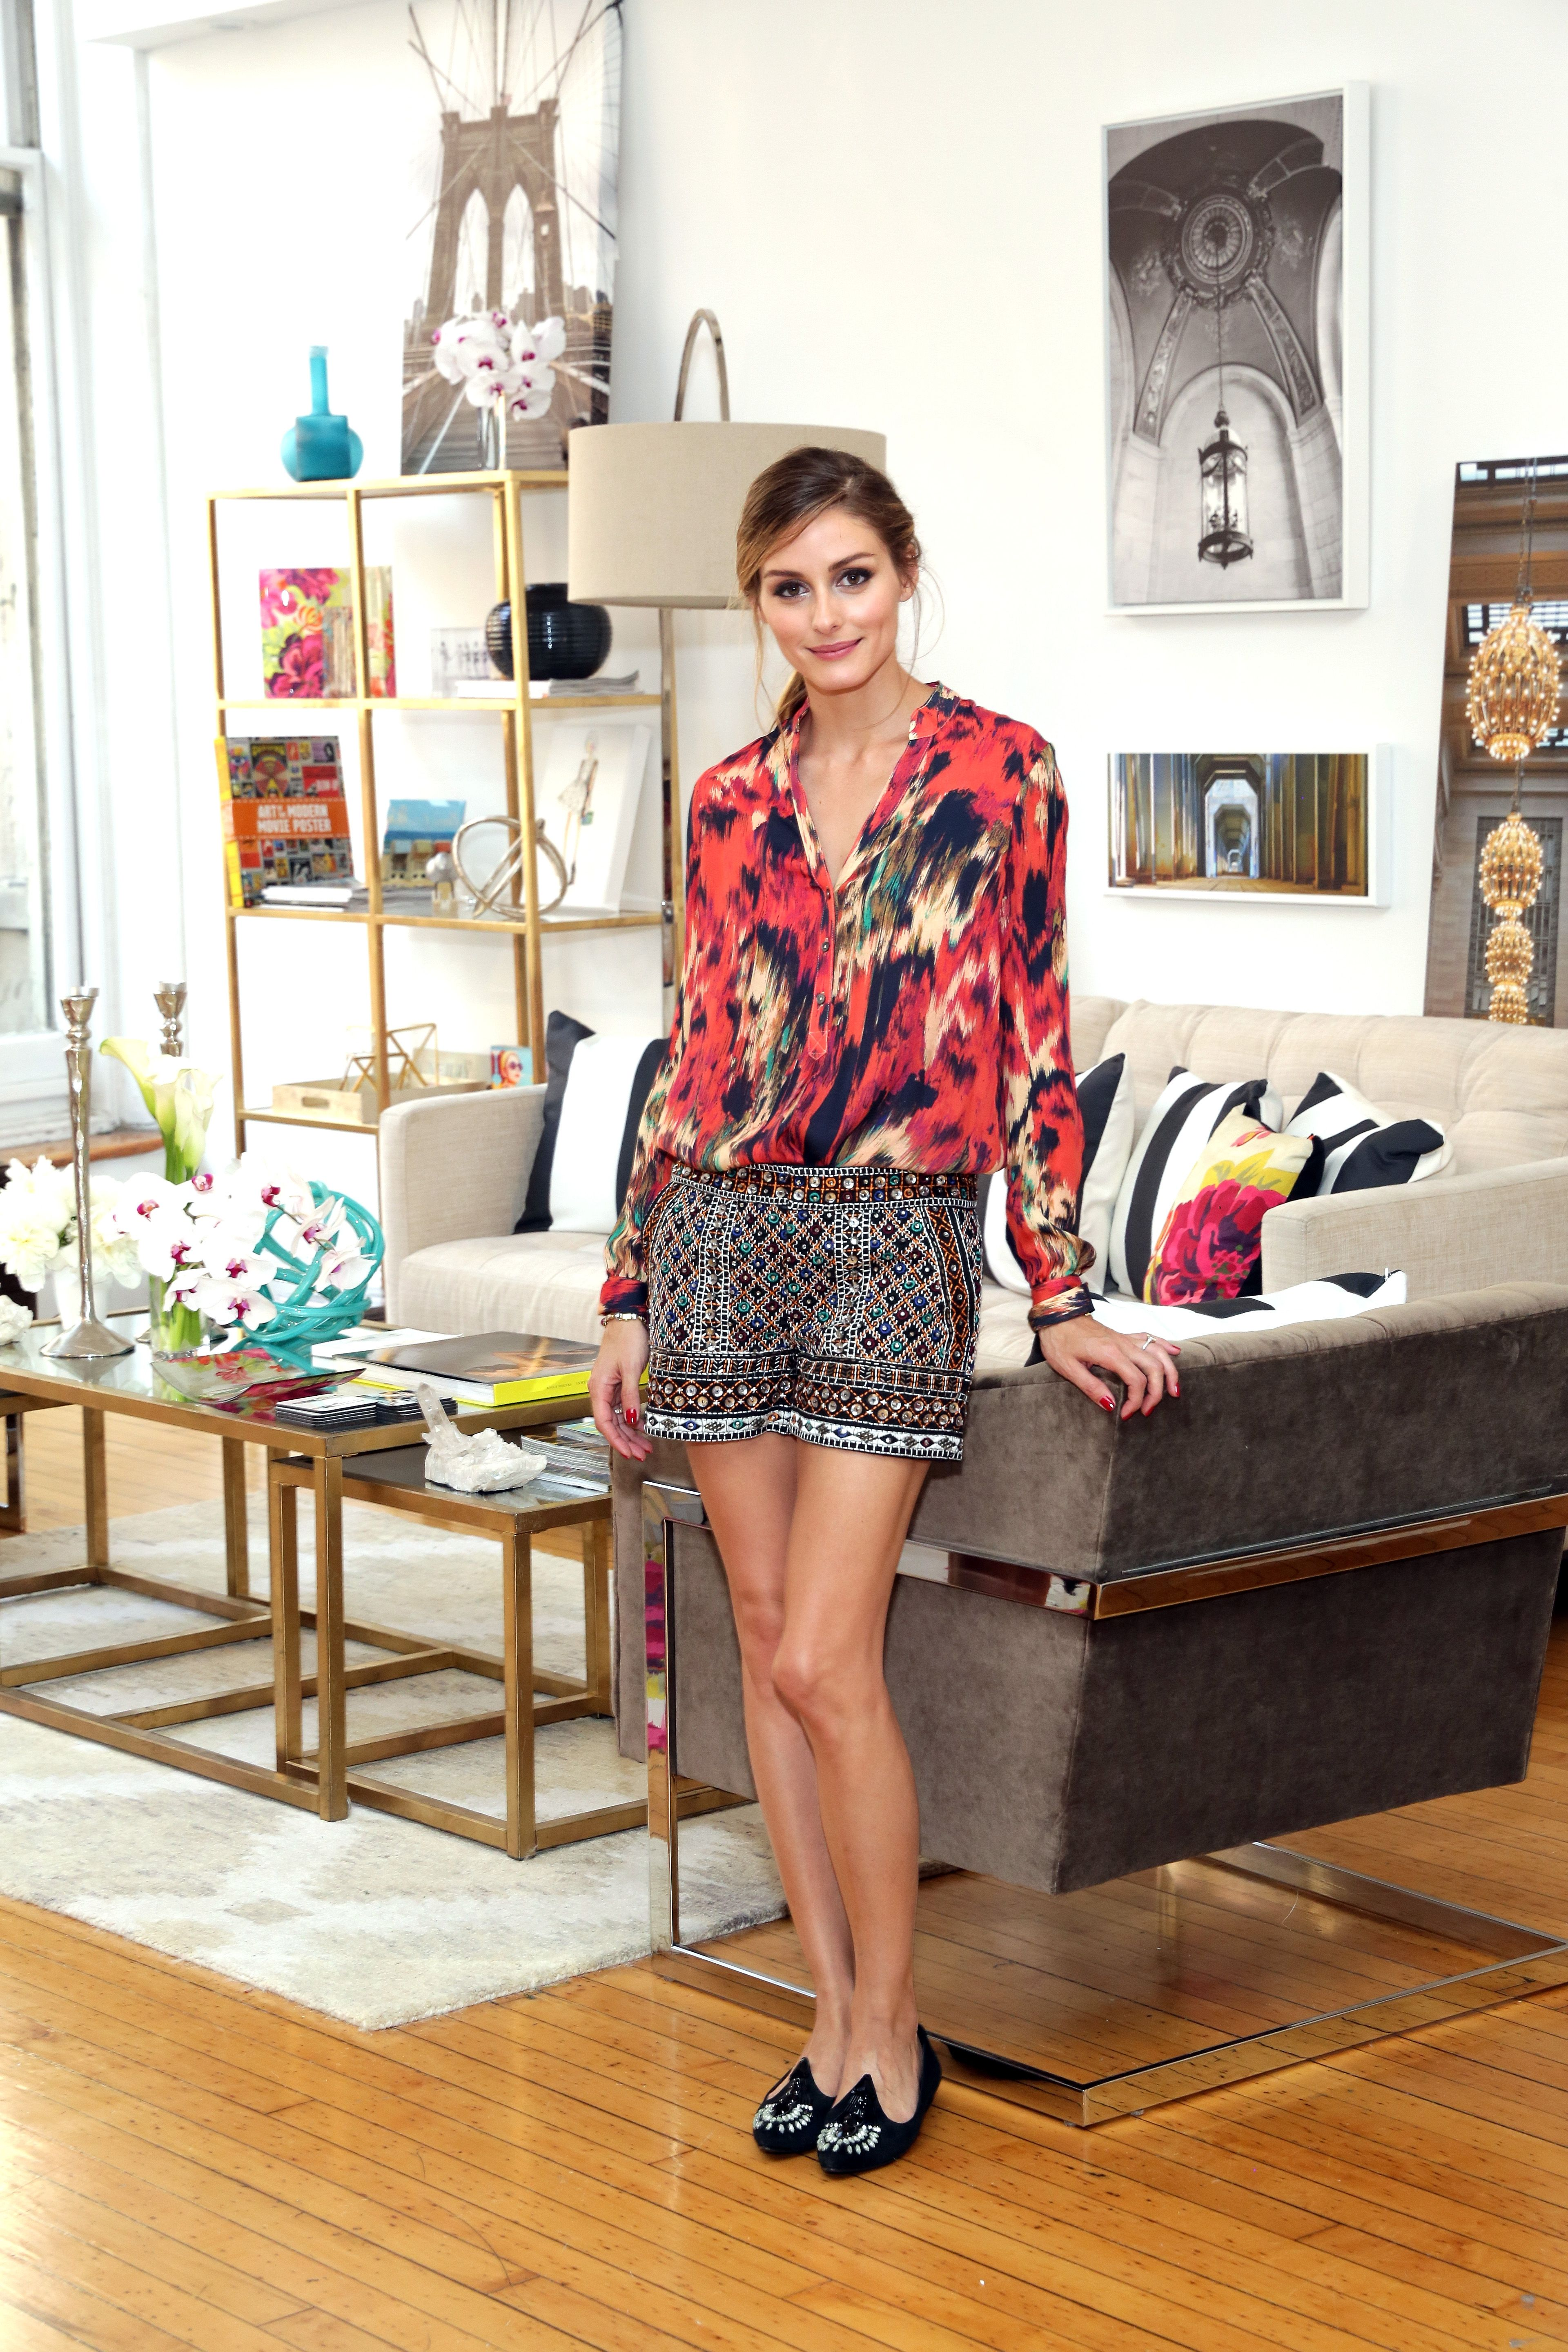 How Newlywed Olivia Palermo Brings Her Personal Style To The Home